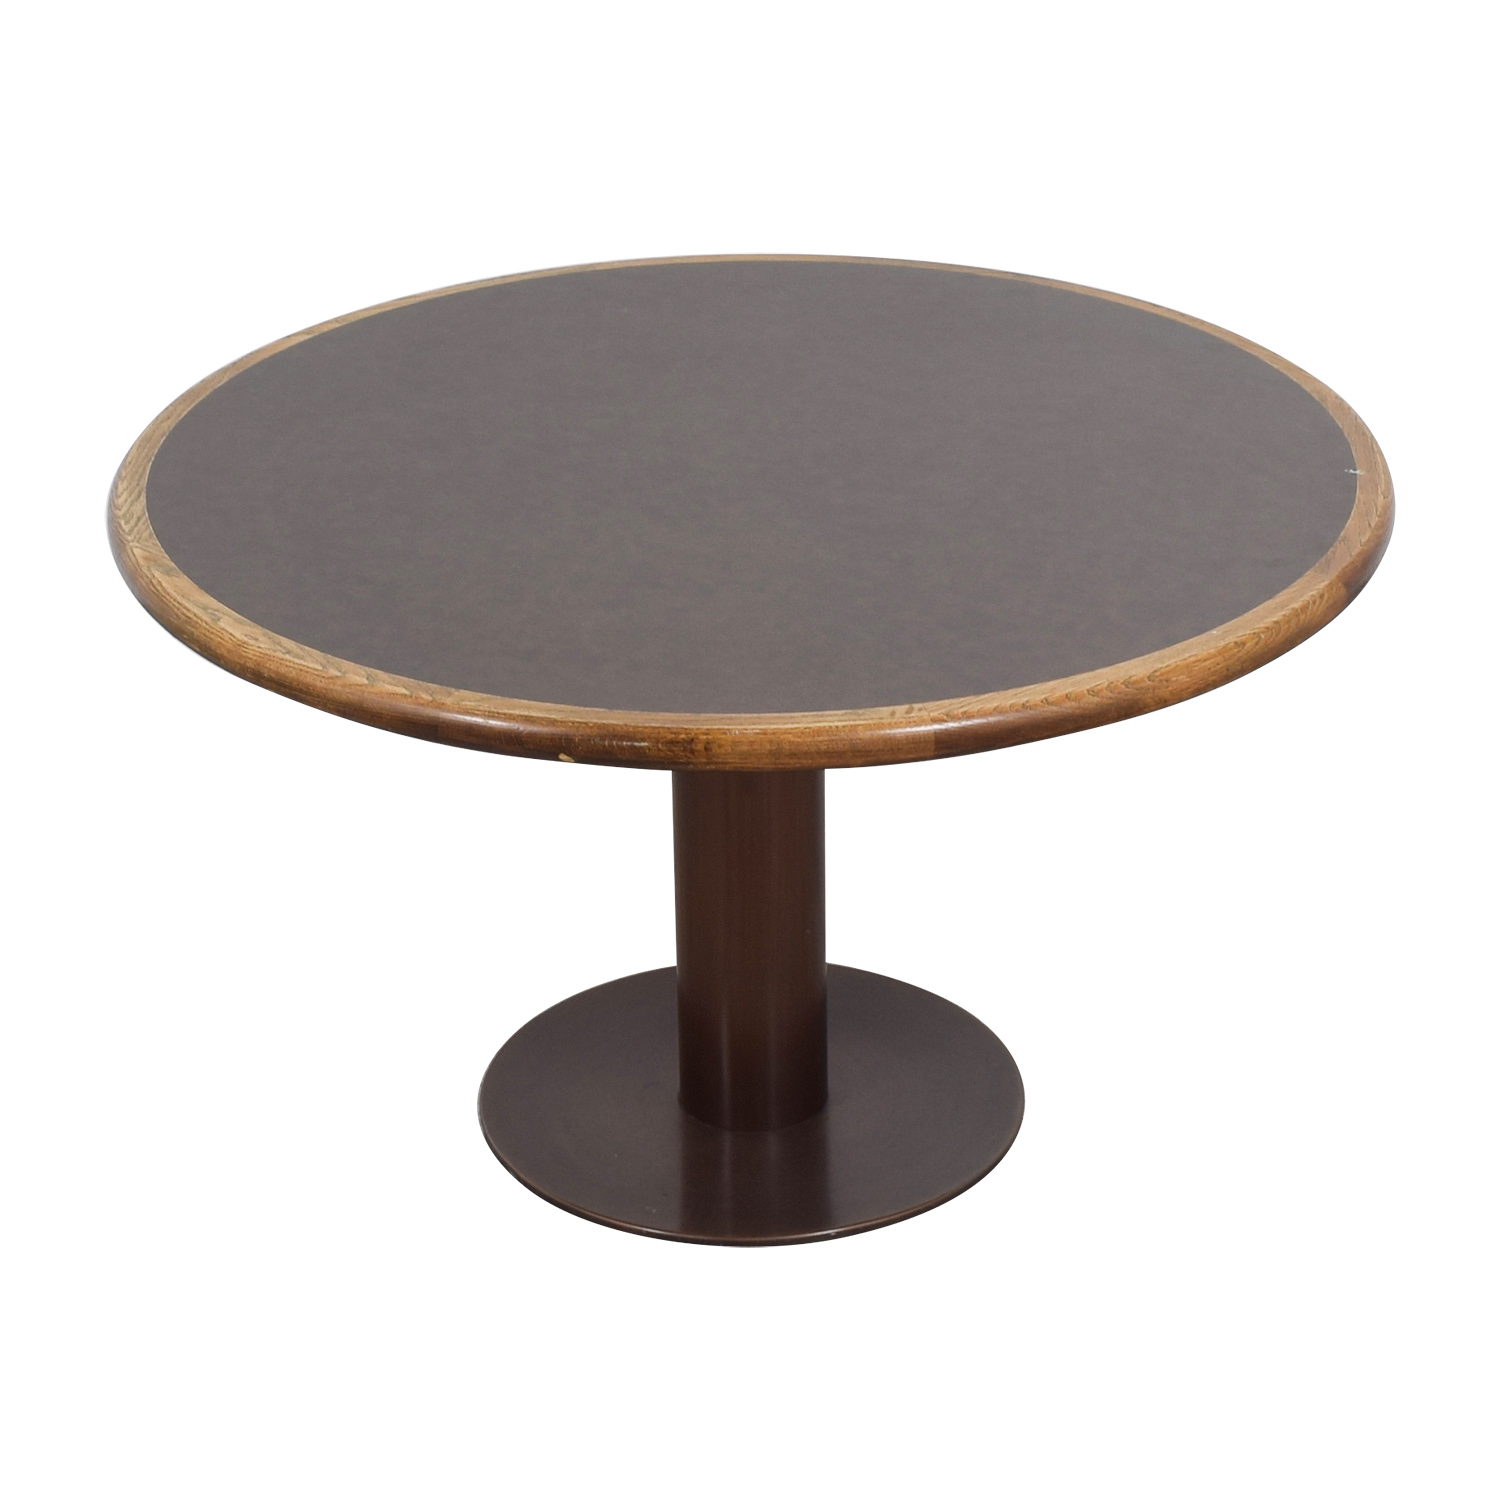 Round Wood & Metal Dining Table